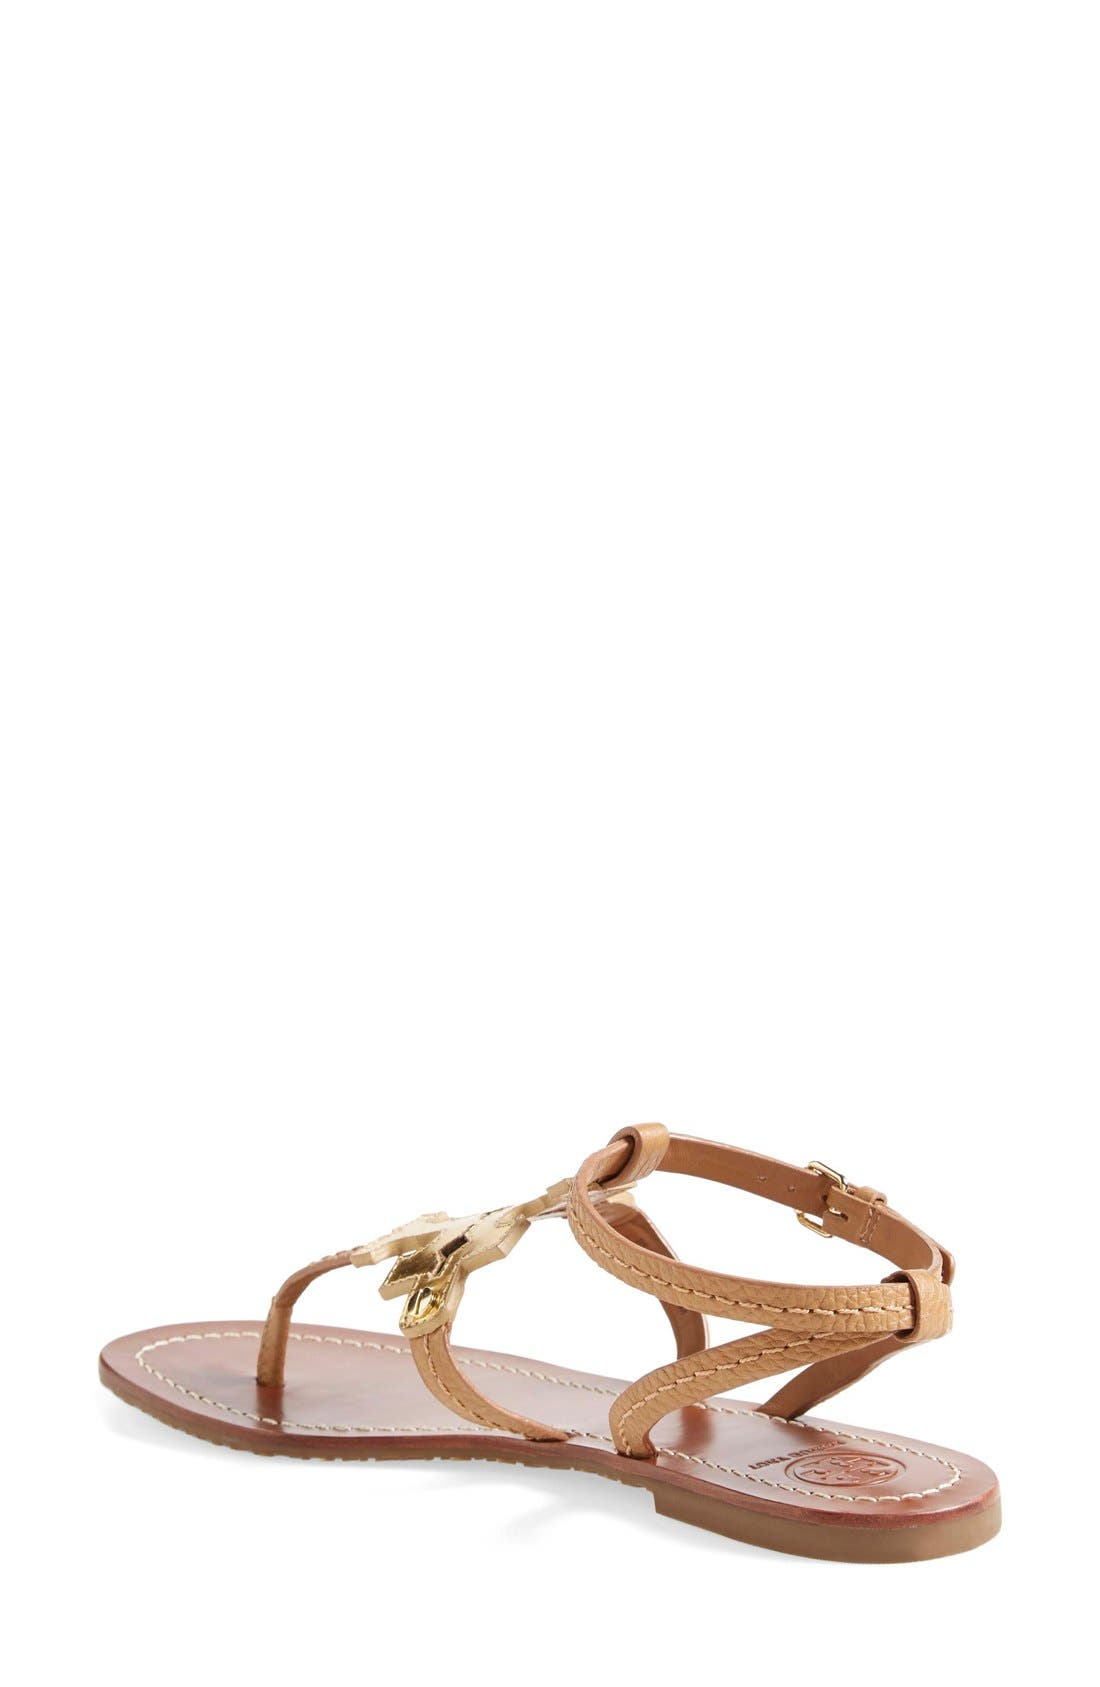 Alternate Image 2  - Tory Burch 'Chandler' Leather Sandal (Women)